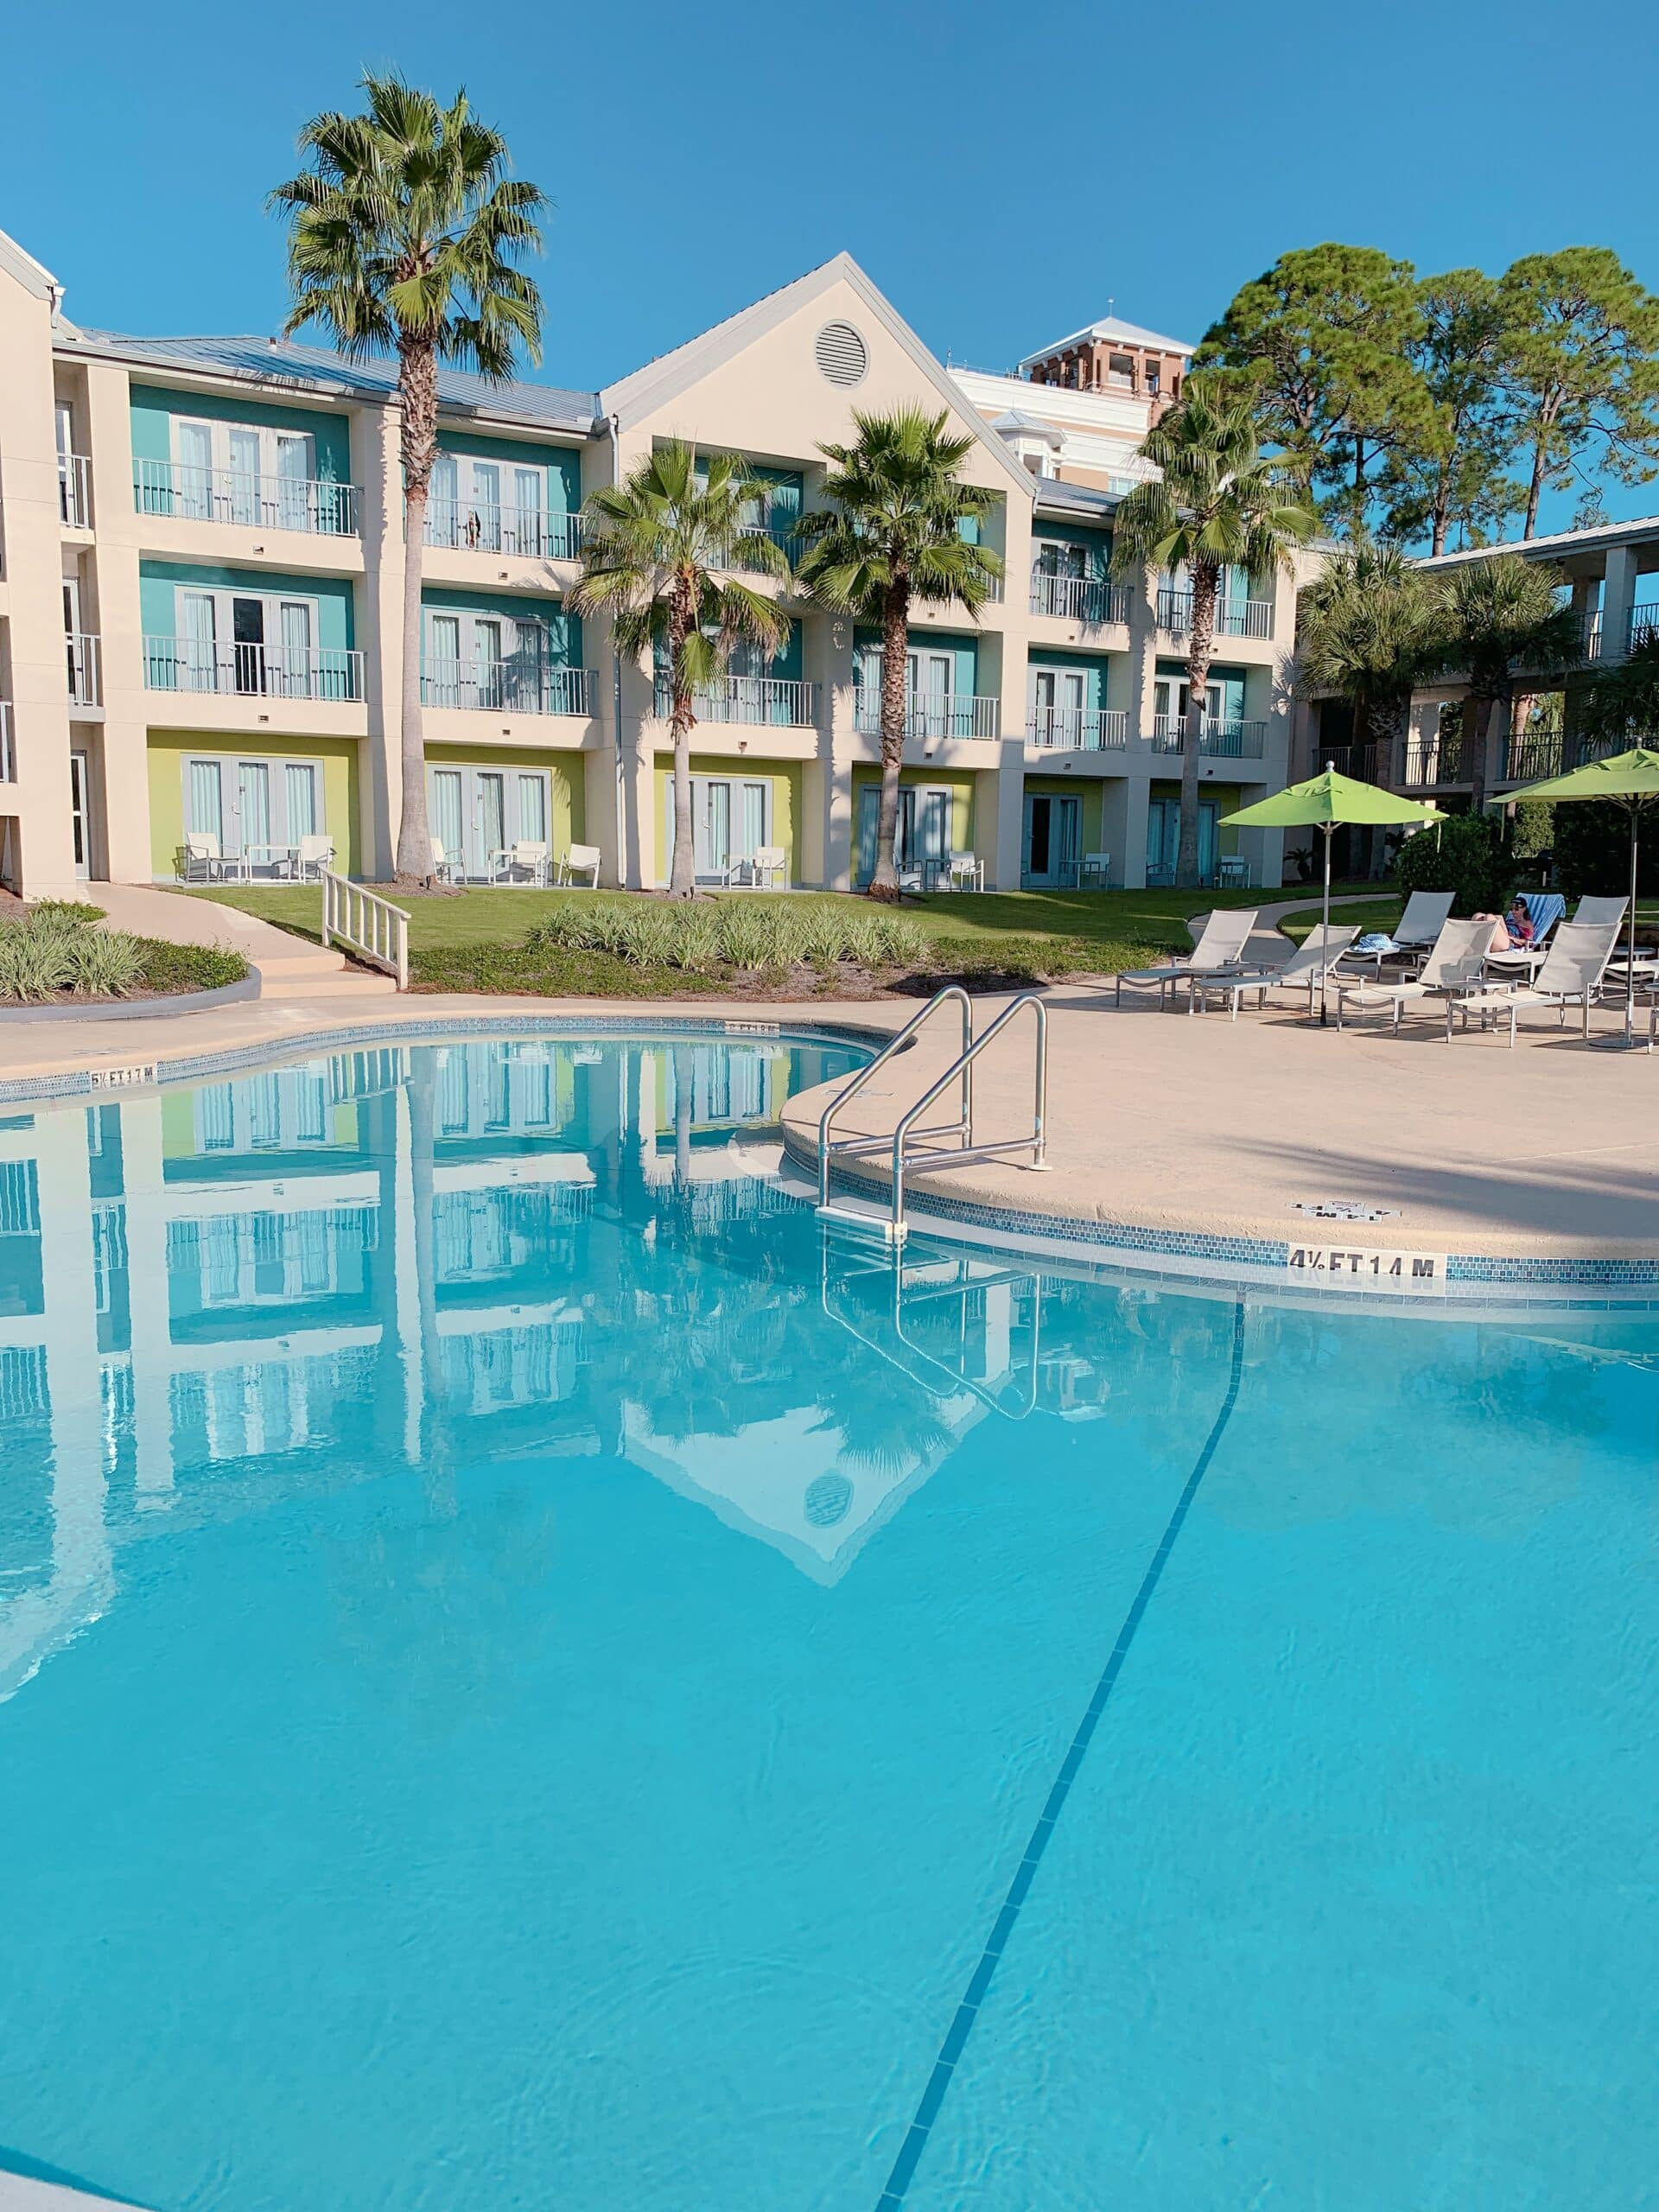 Where To Stay In Panama City Beach